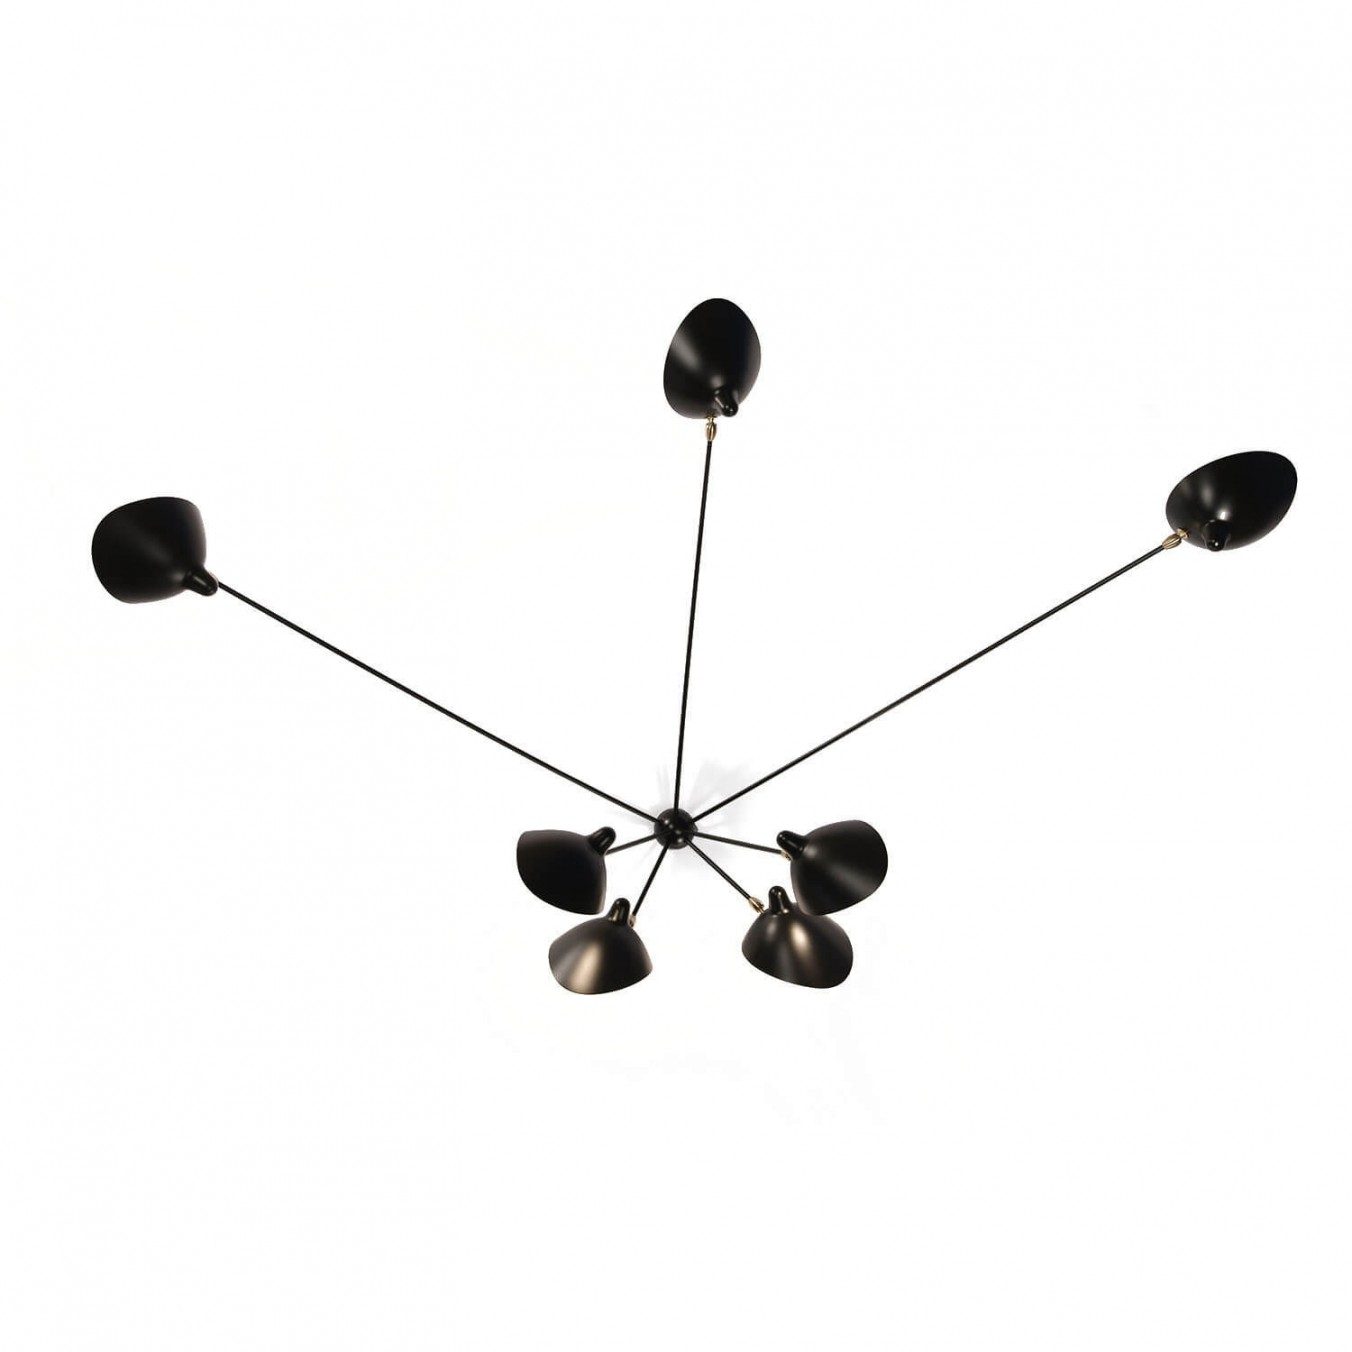 Serge Mouille Spider Wall Lighting